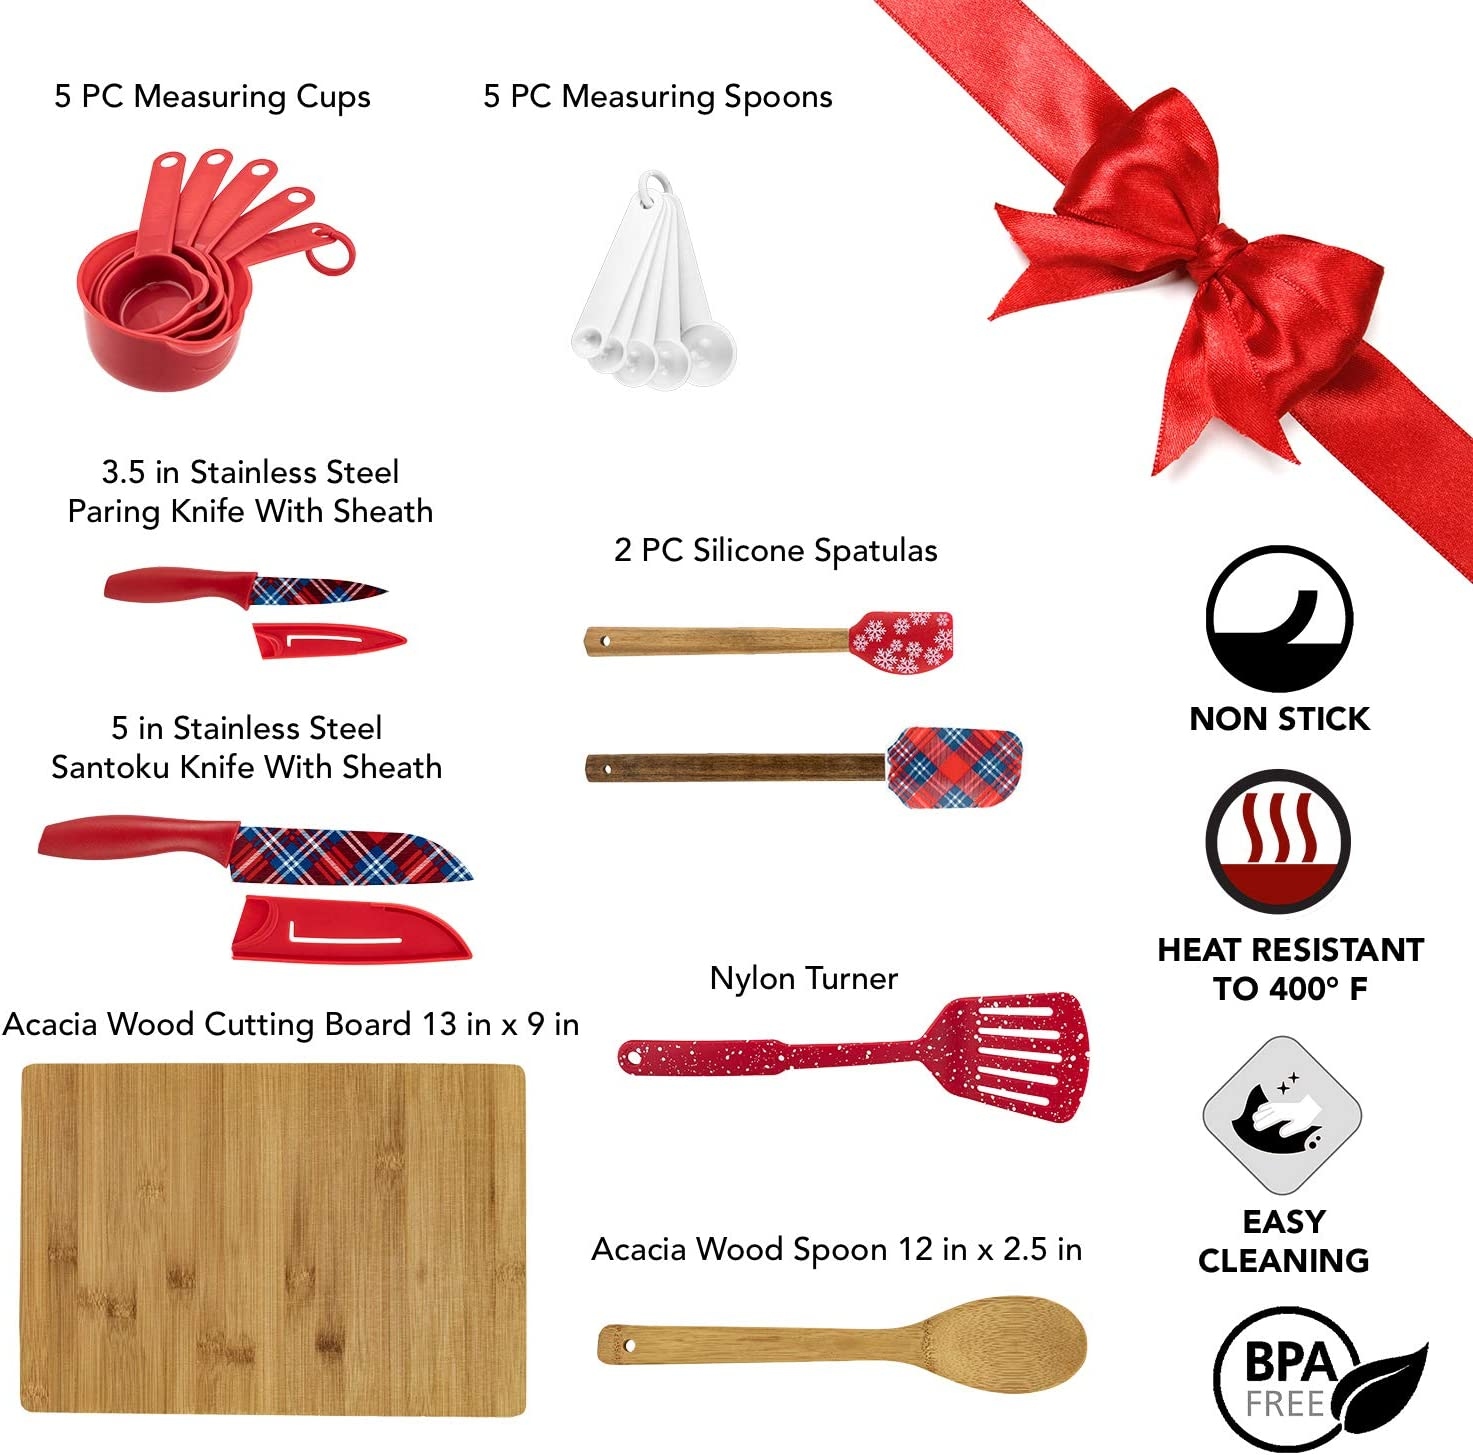 Cooking Utensils Gift Kitchen Decor Measuring Cups and Spoons Nylon Turner Silicone Spatulas Stainless Steel Knives Acacia Wood Spoon /& Cutting Board Cook with Color 19 Pc Kitchen Gadget Set